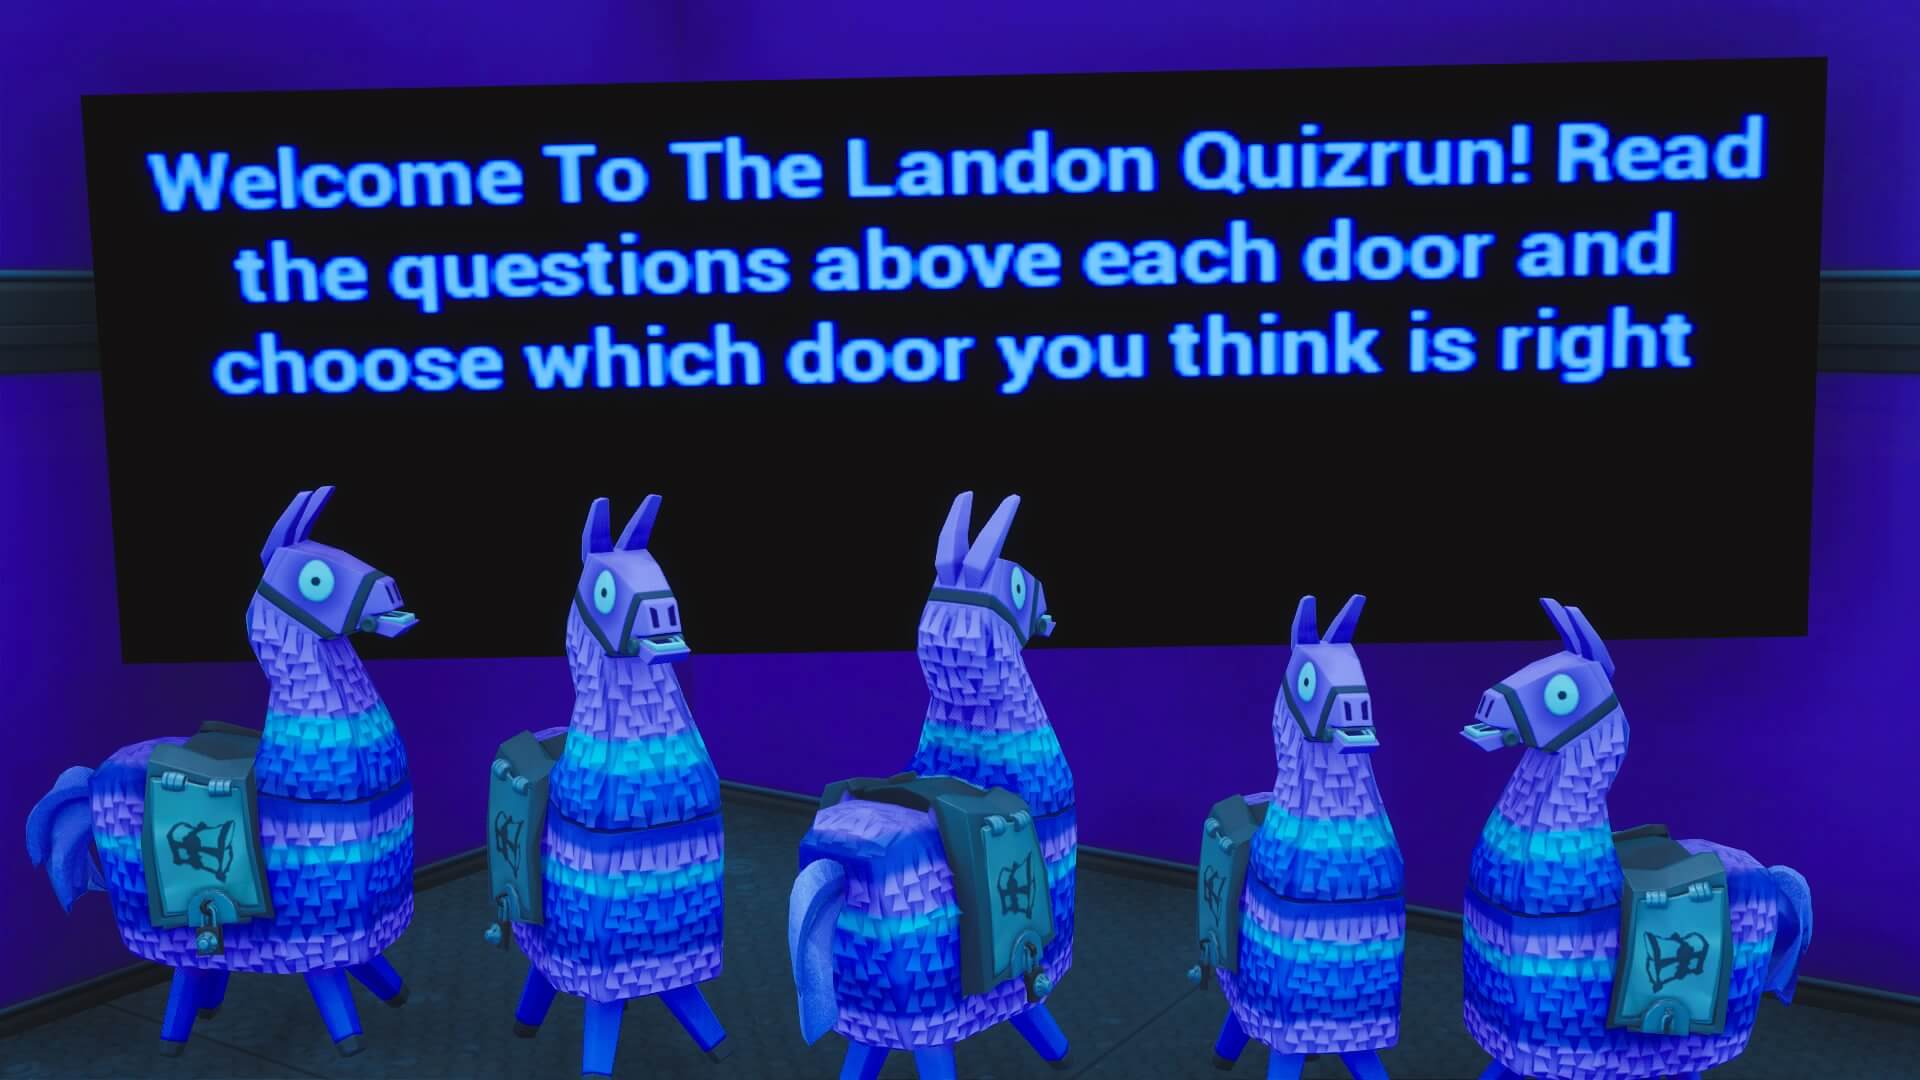 LANDON QUIZ RUN